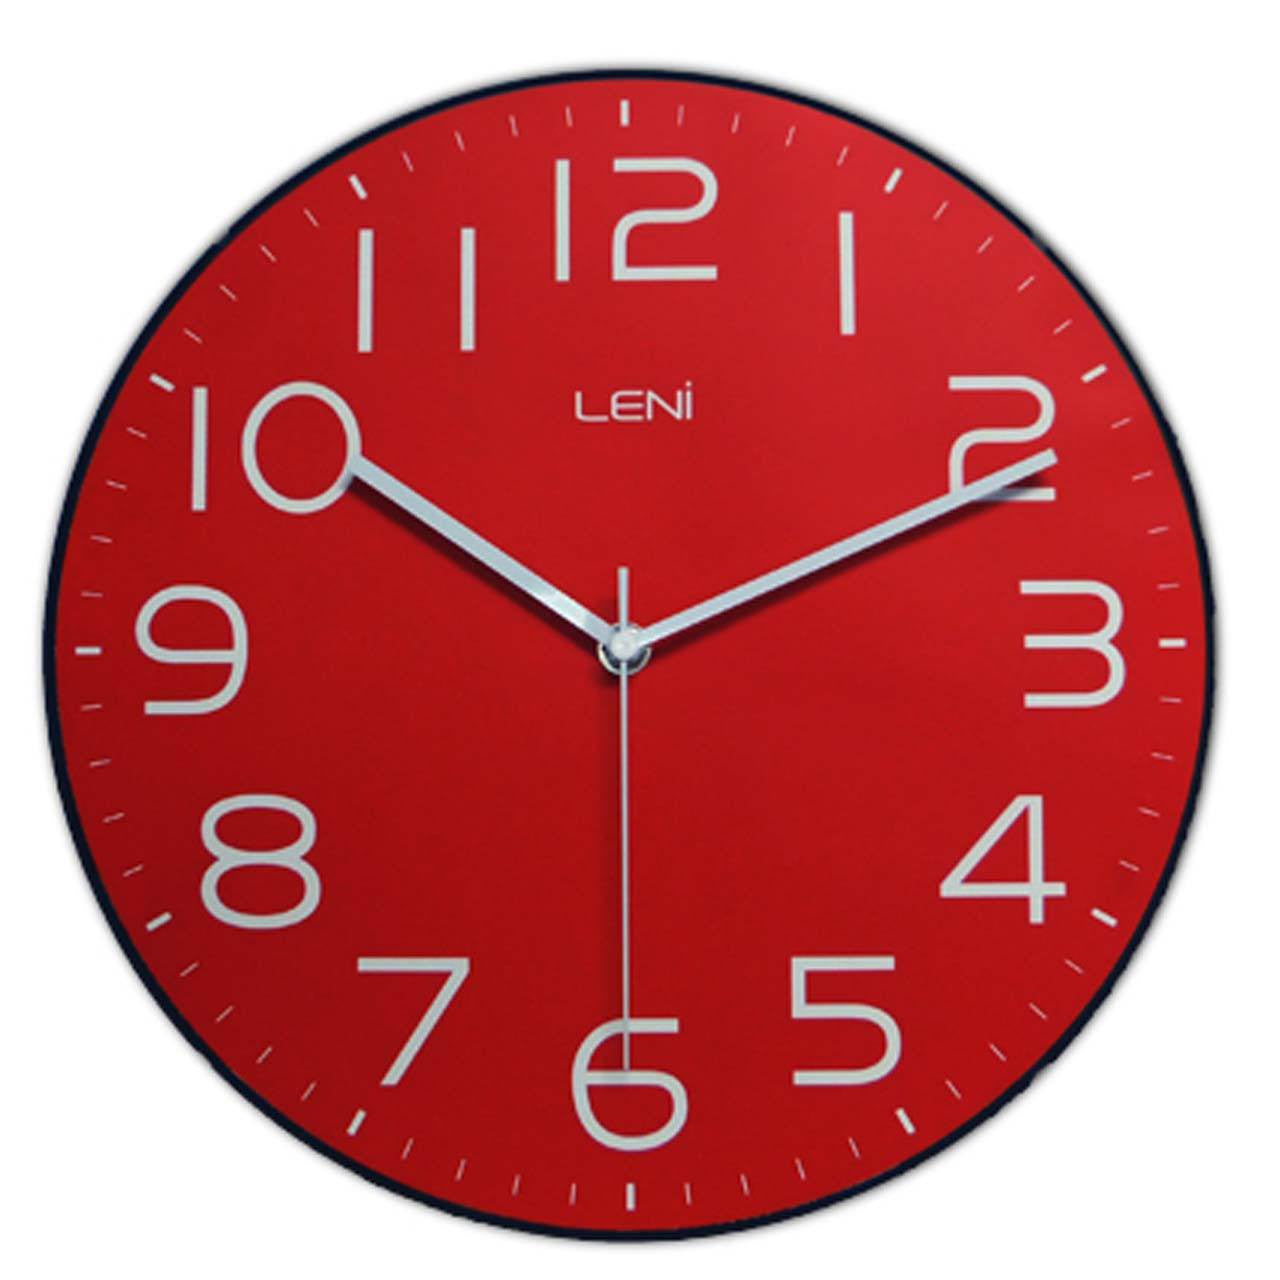 Leni Classic Red Wall Clock 62023RED